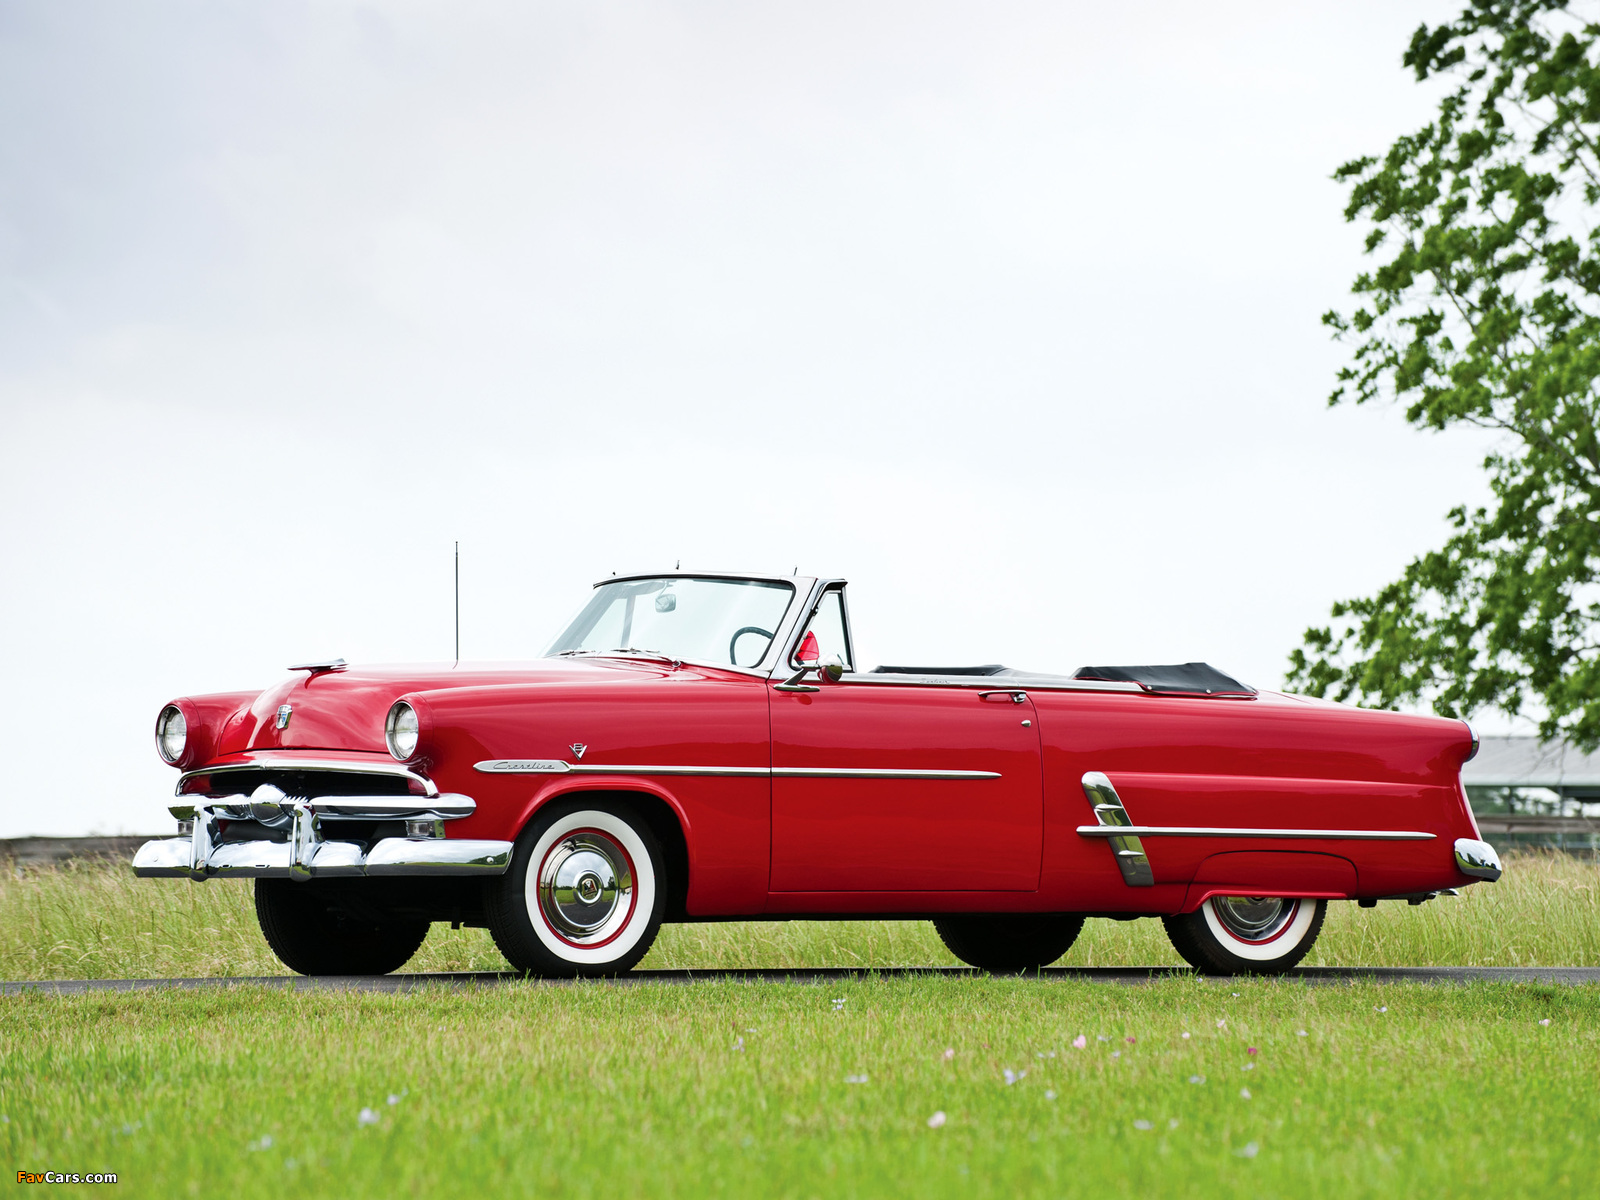 Ford Crestline Sunliner Convertible Coupe (76B) 1953 images (1600 x 1200)